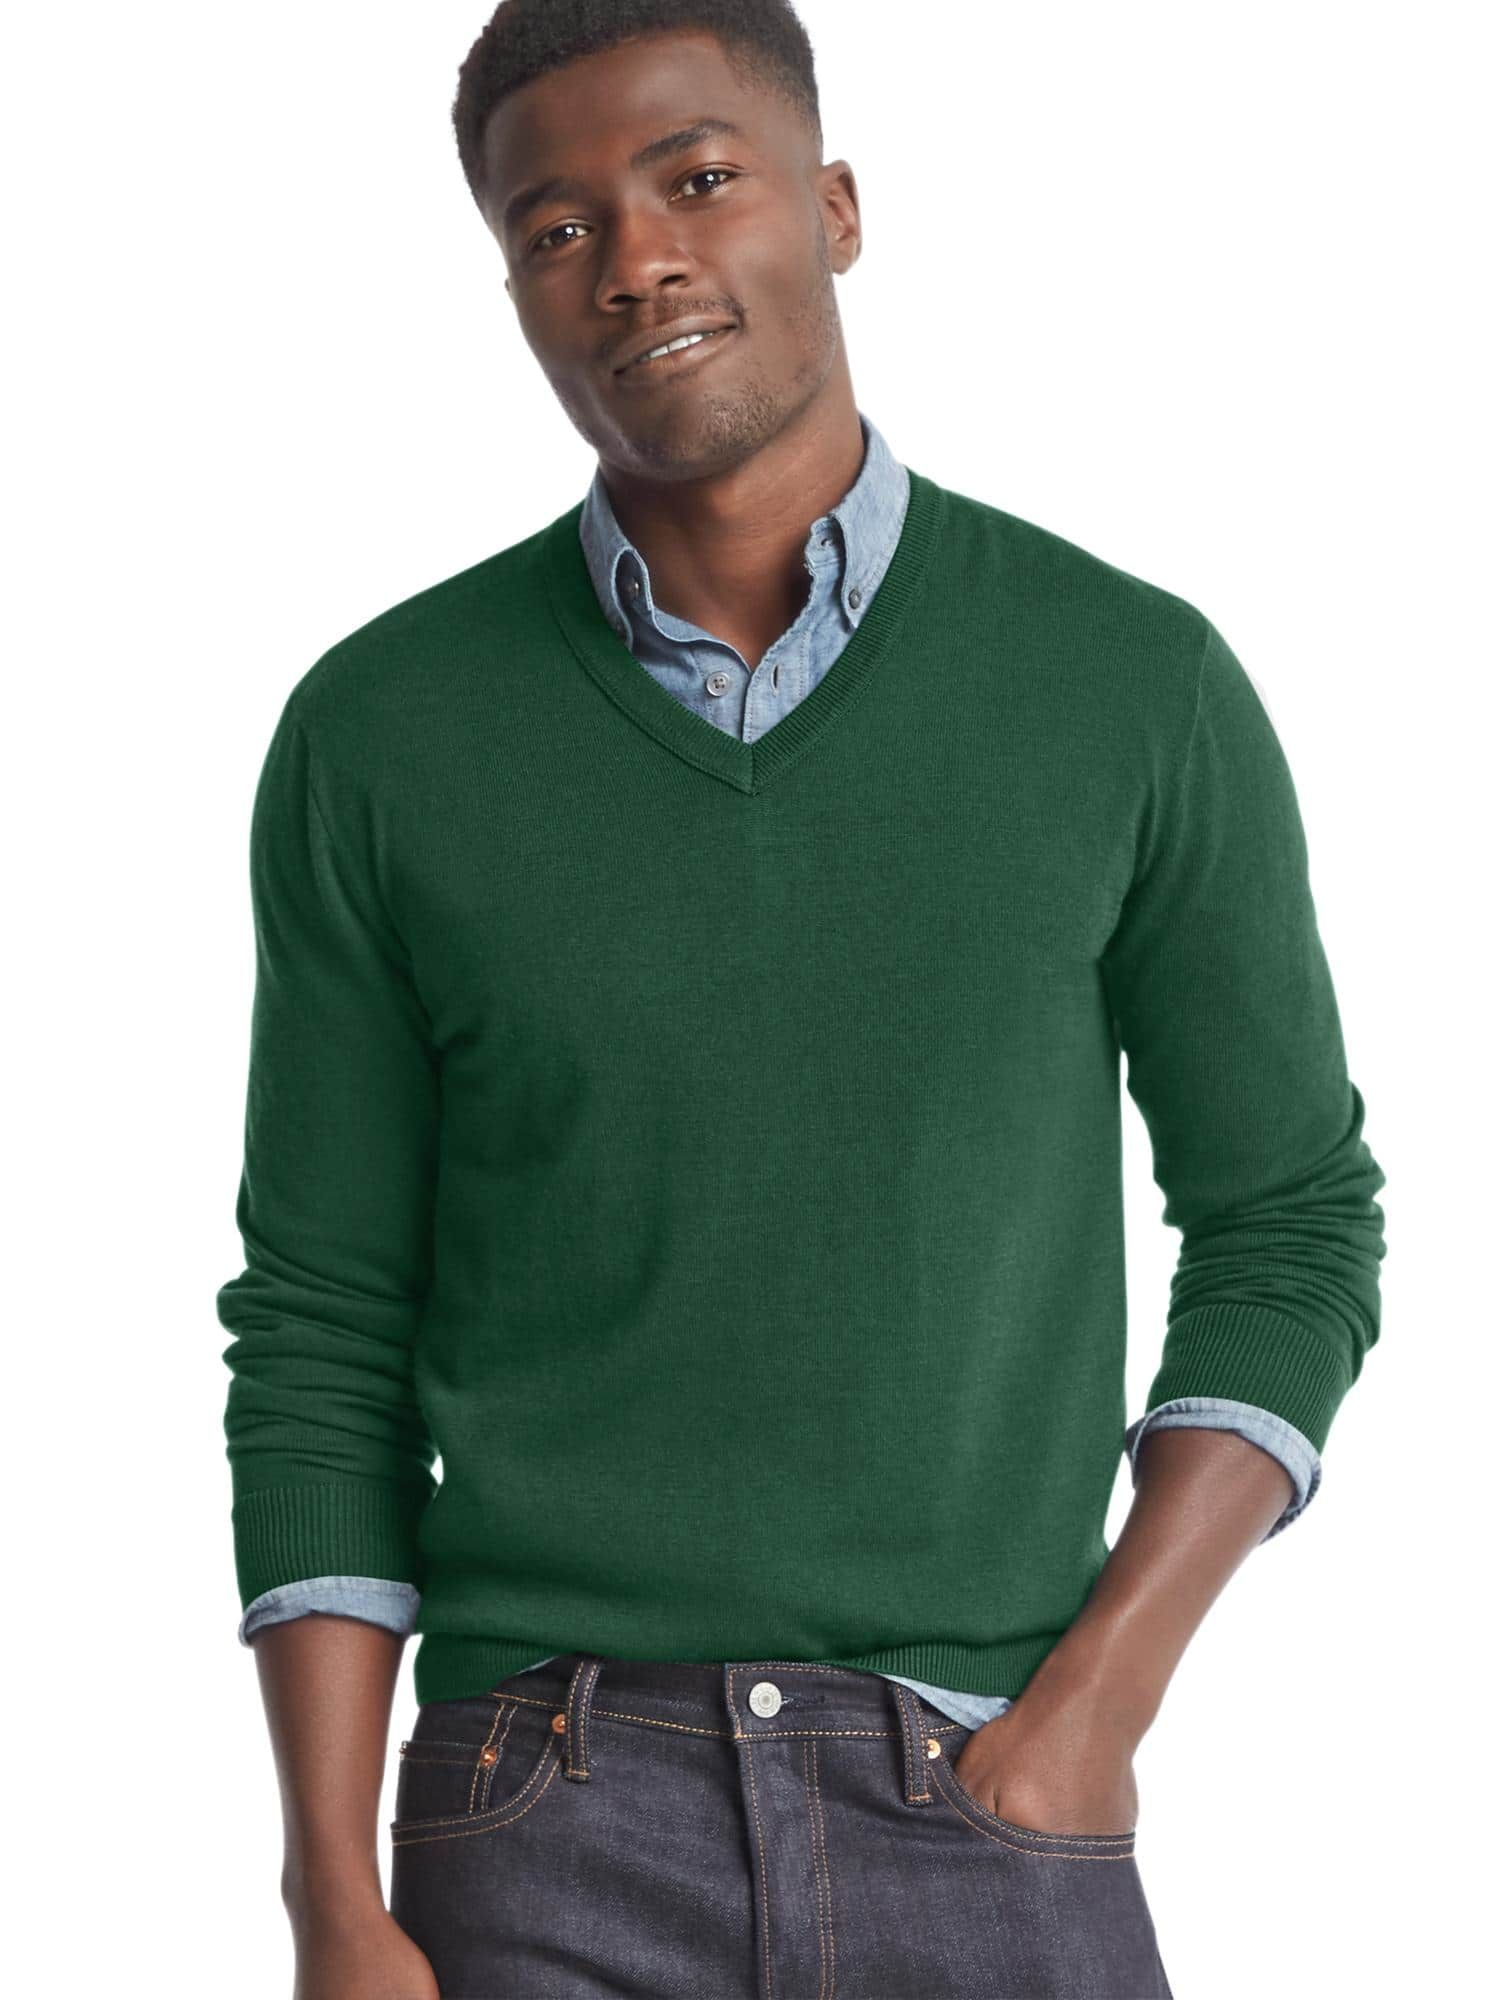 Have this in navy, green, gray Vneck sweater, Men